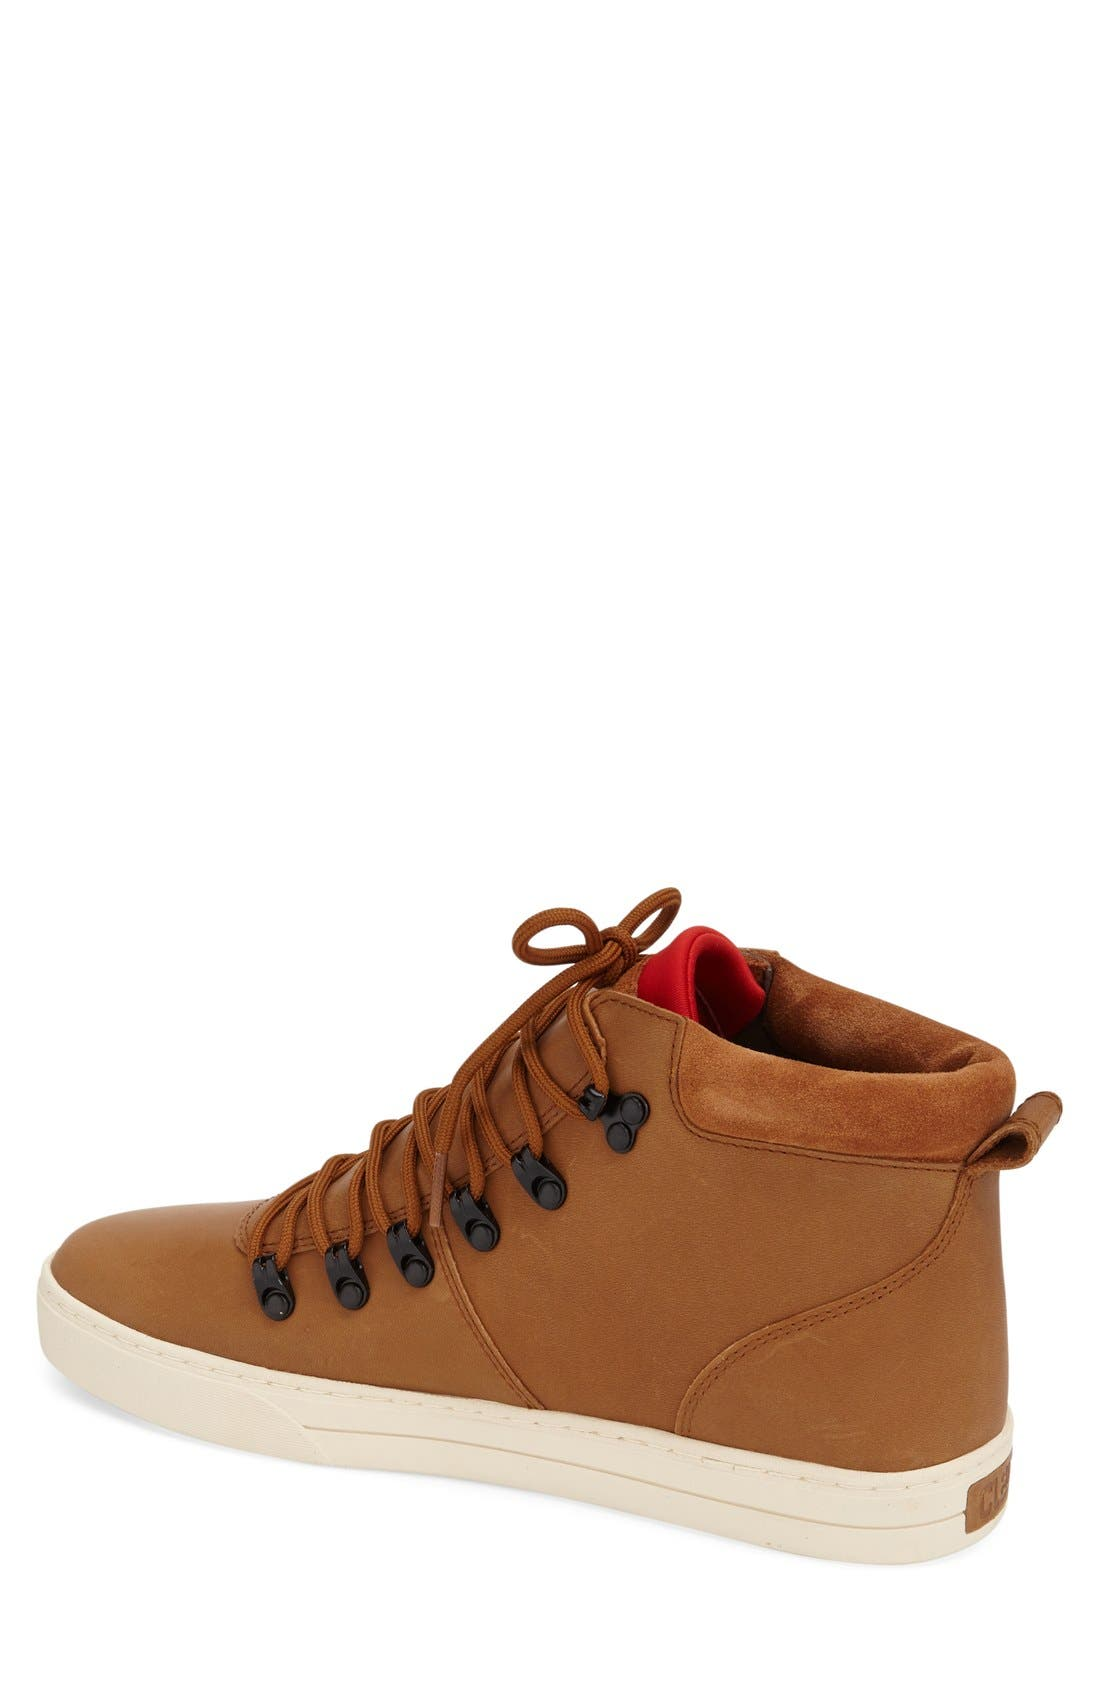 'Grant' Sneaker Boot,                             Alternate thumbnail 4, color,                             234